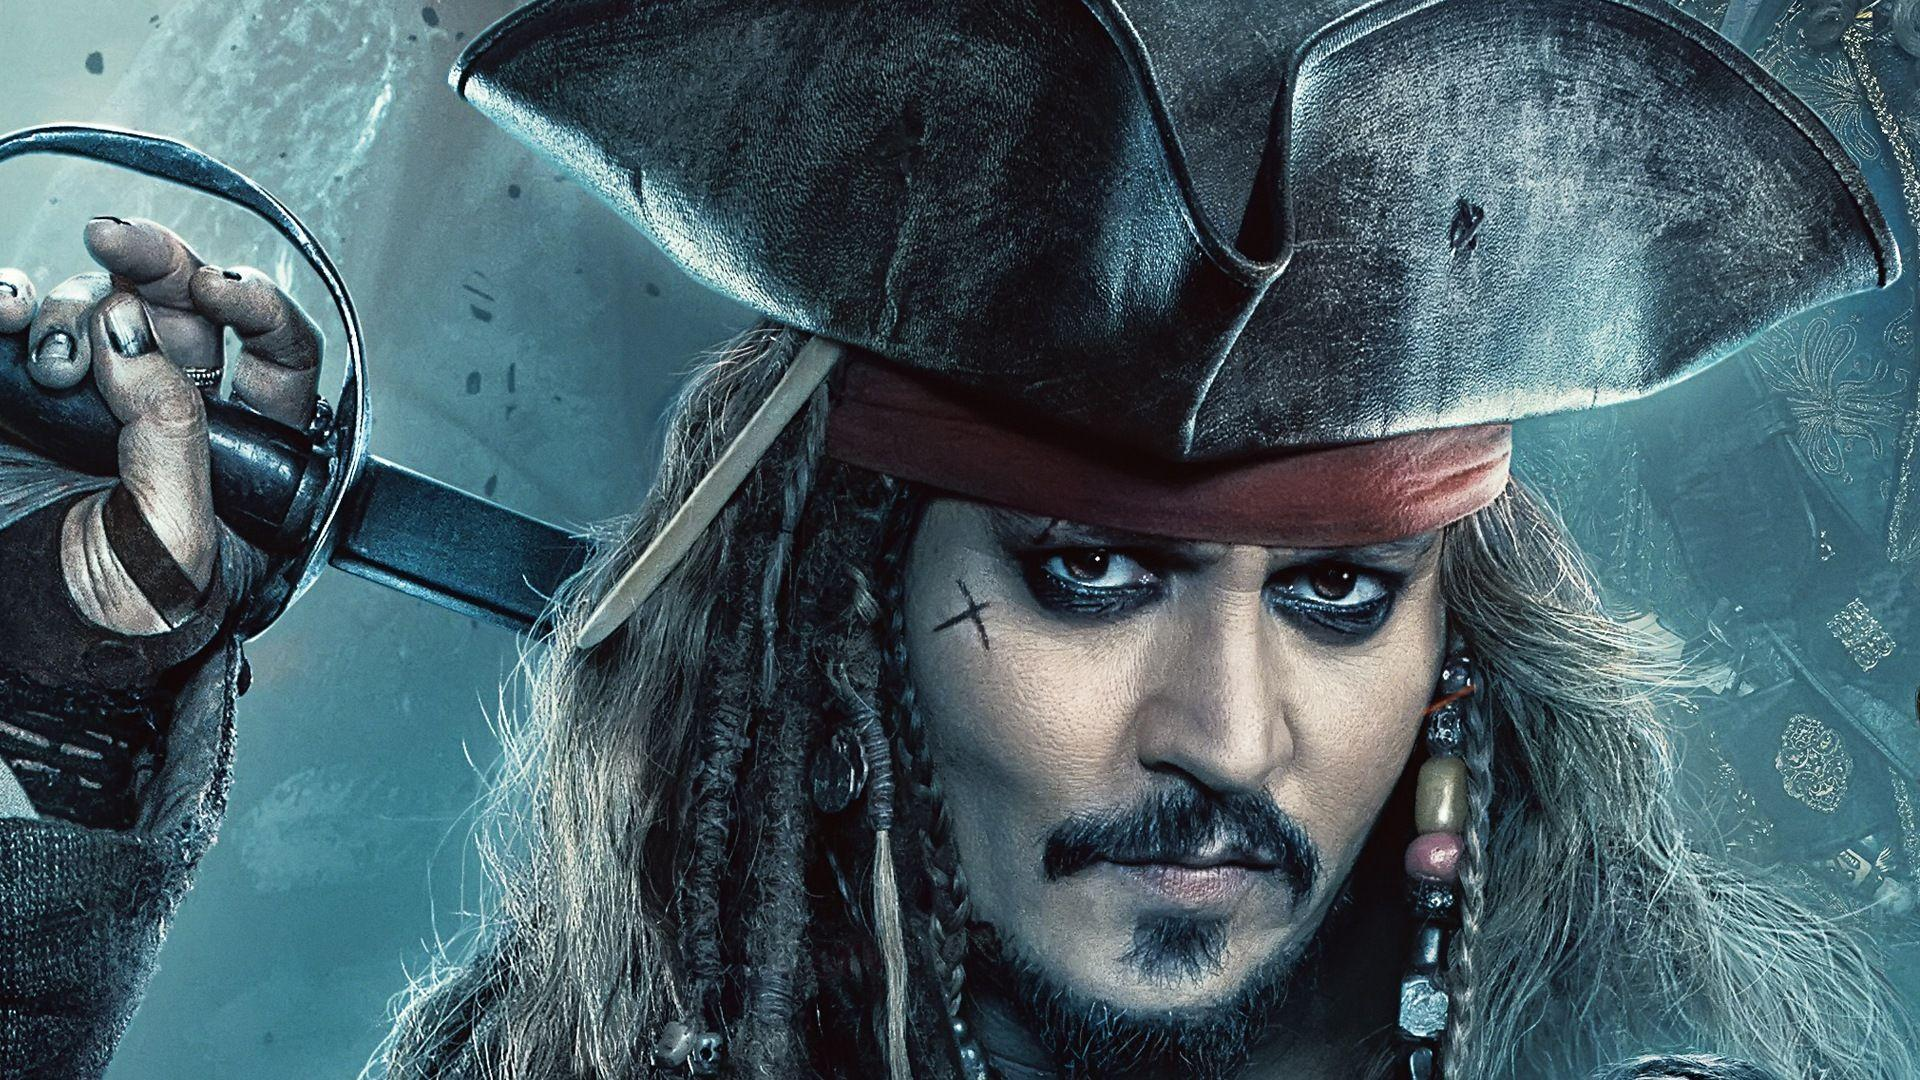 Jack Sparrow | Pirates of the Caribbean | 7 Wallpapers